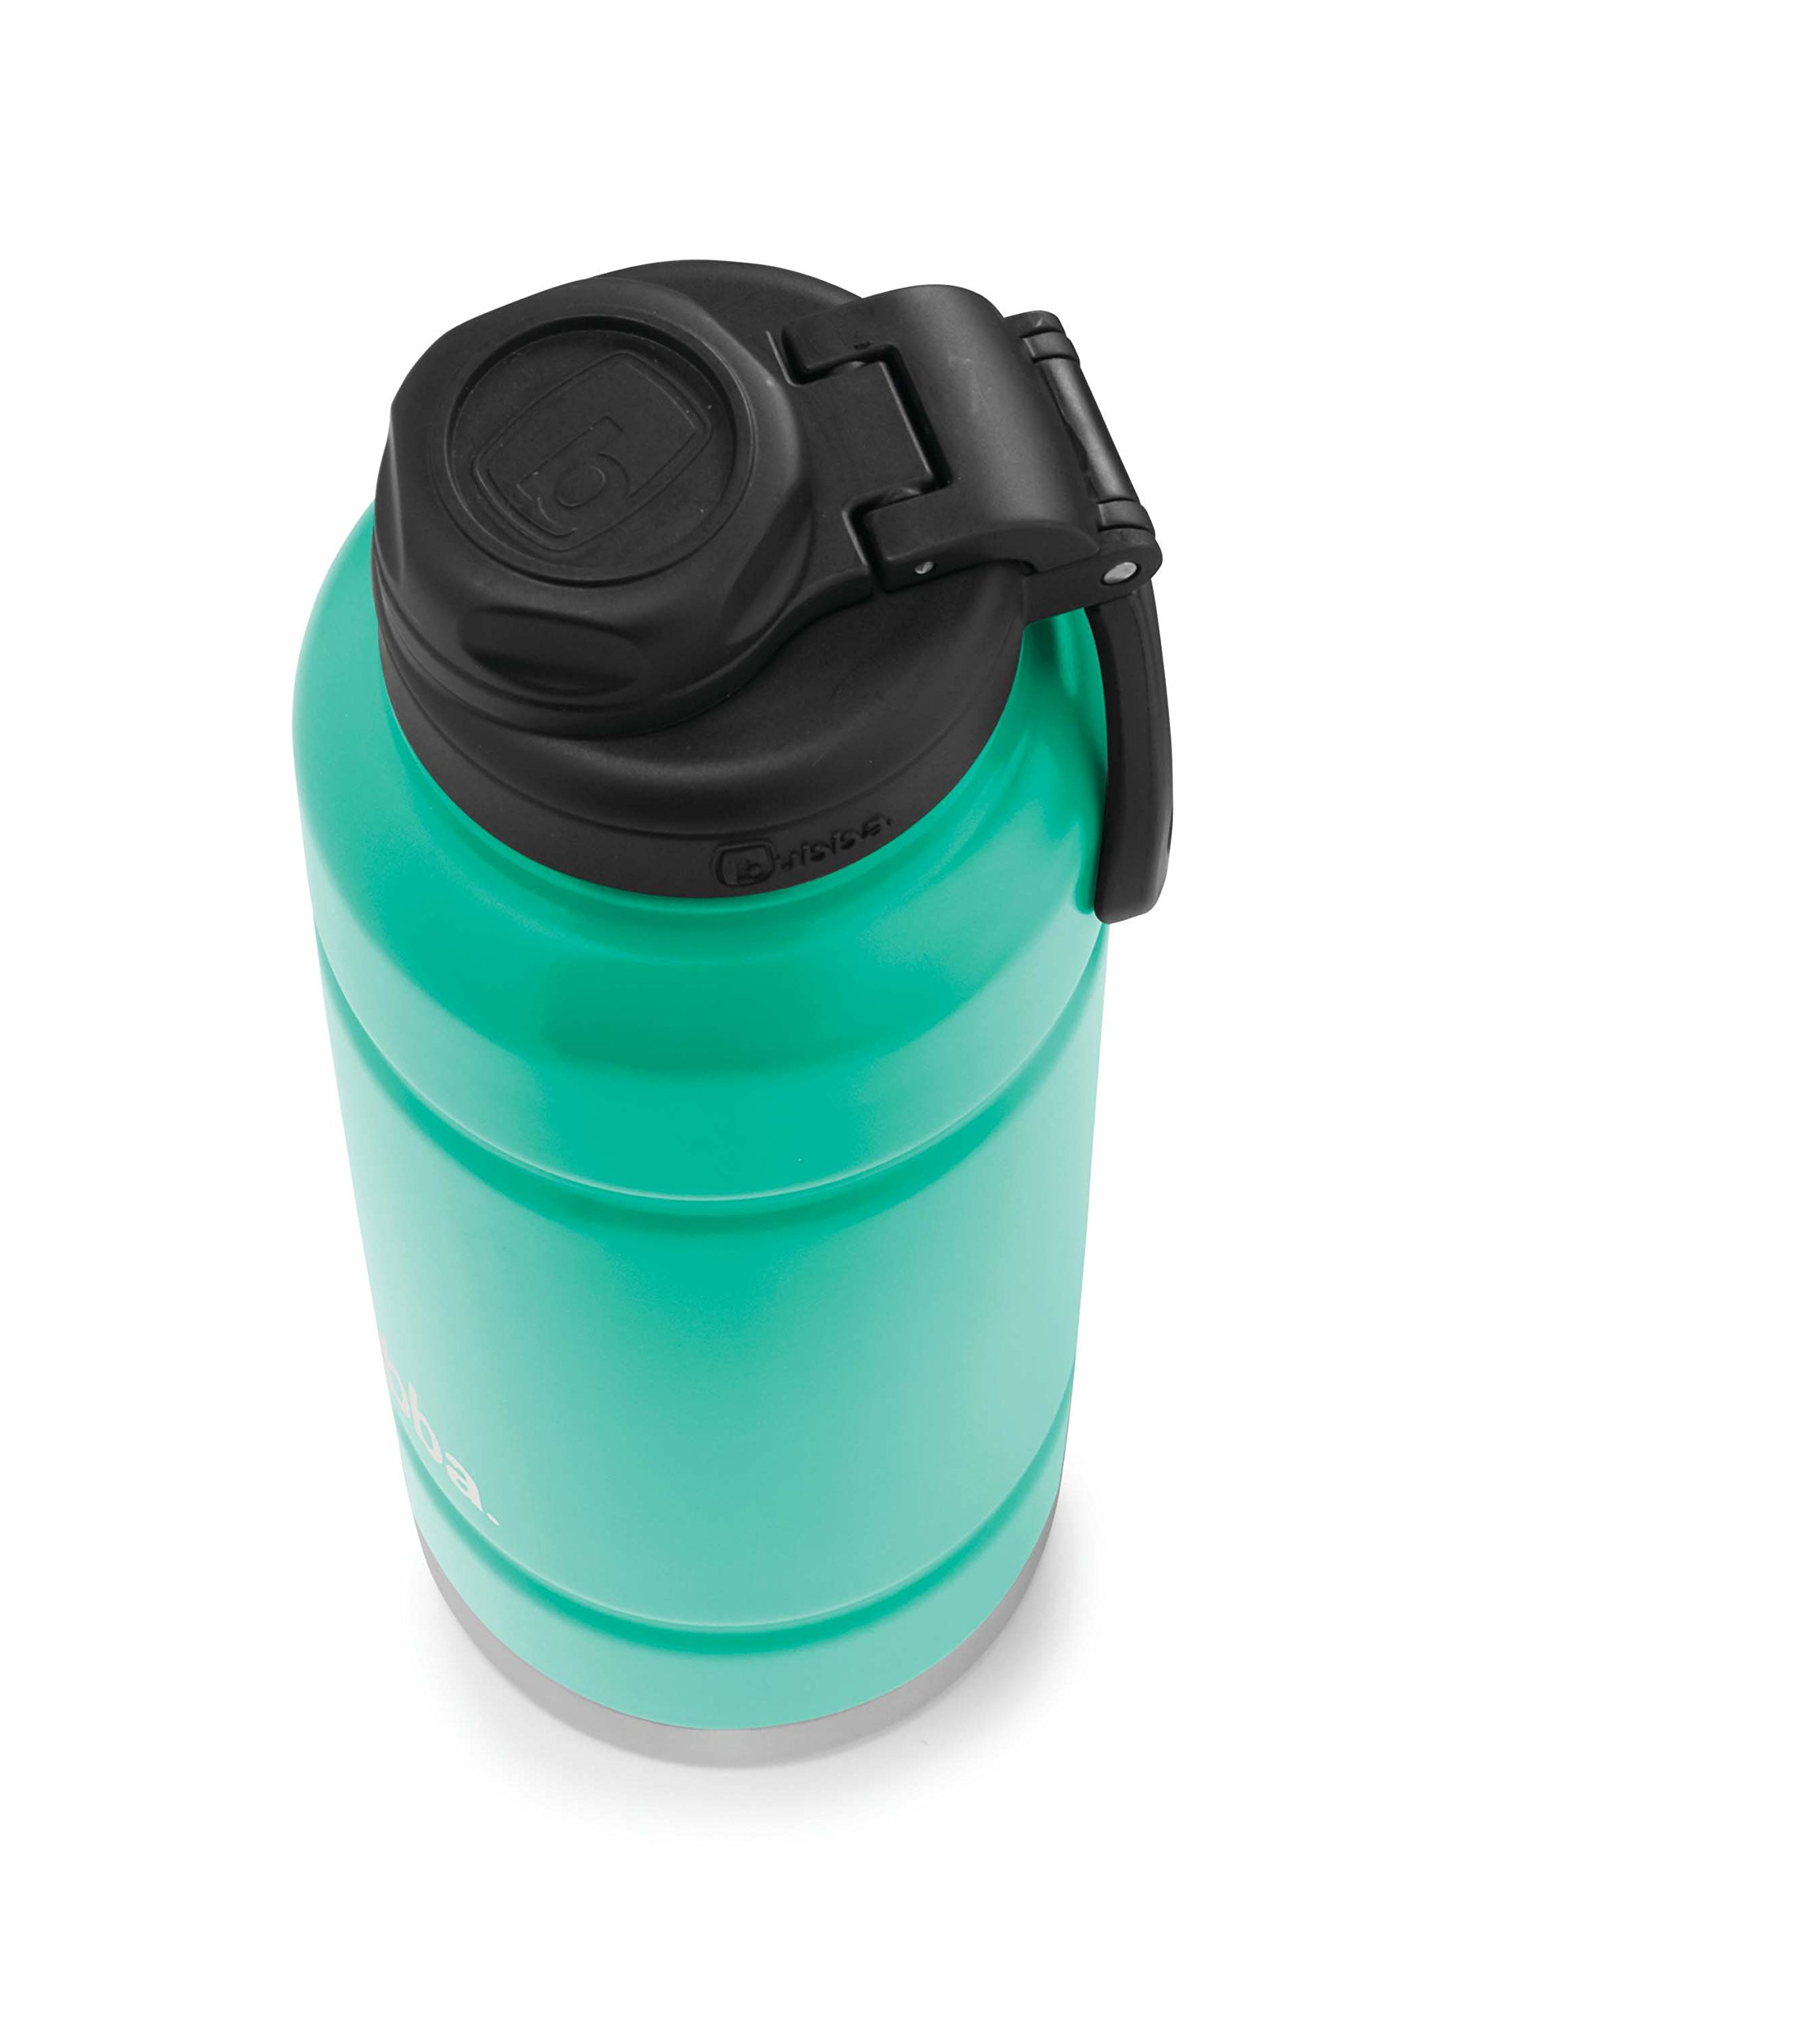 Bubba Trailblazer Vacuum-Insulated Stainless Steel Water Bottle, 40 oz, Rock Candy by bubba (Image #4)